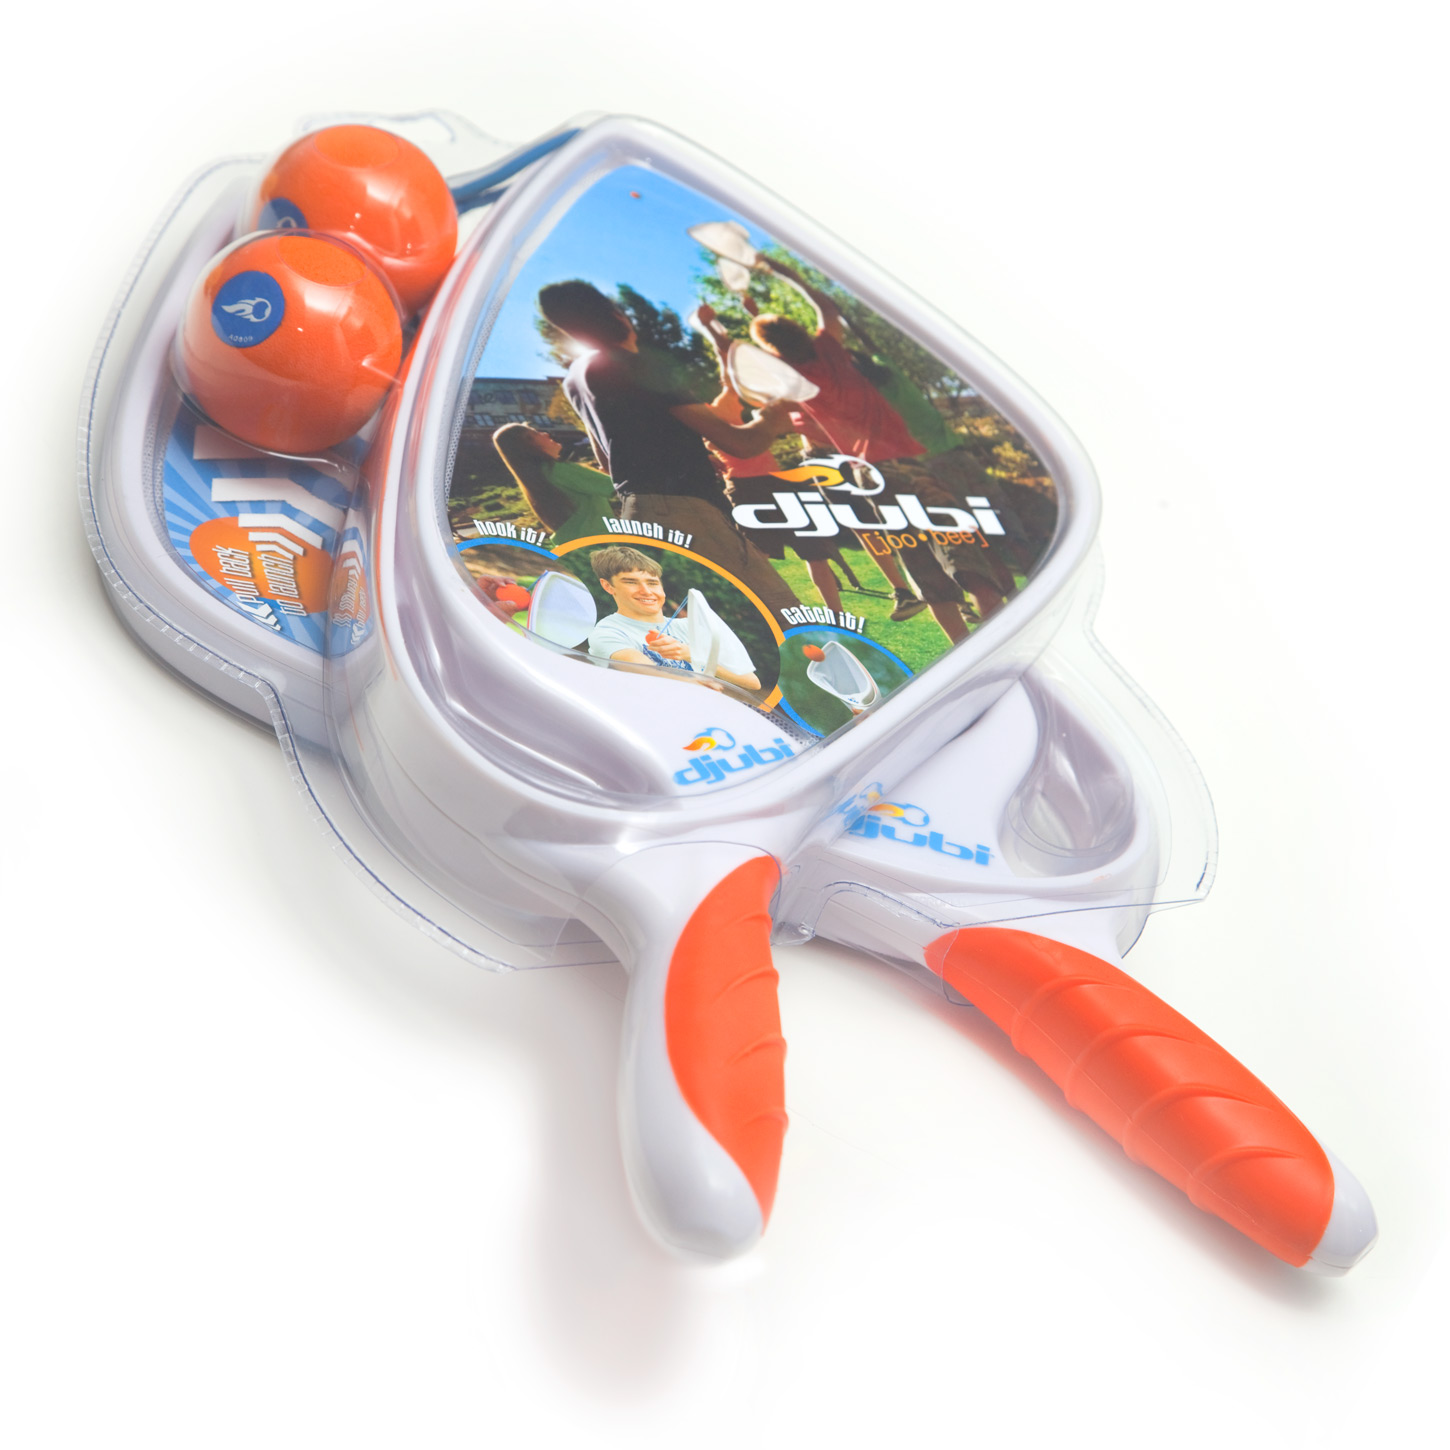 The Original Djubi game in packaging